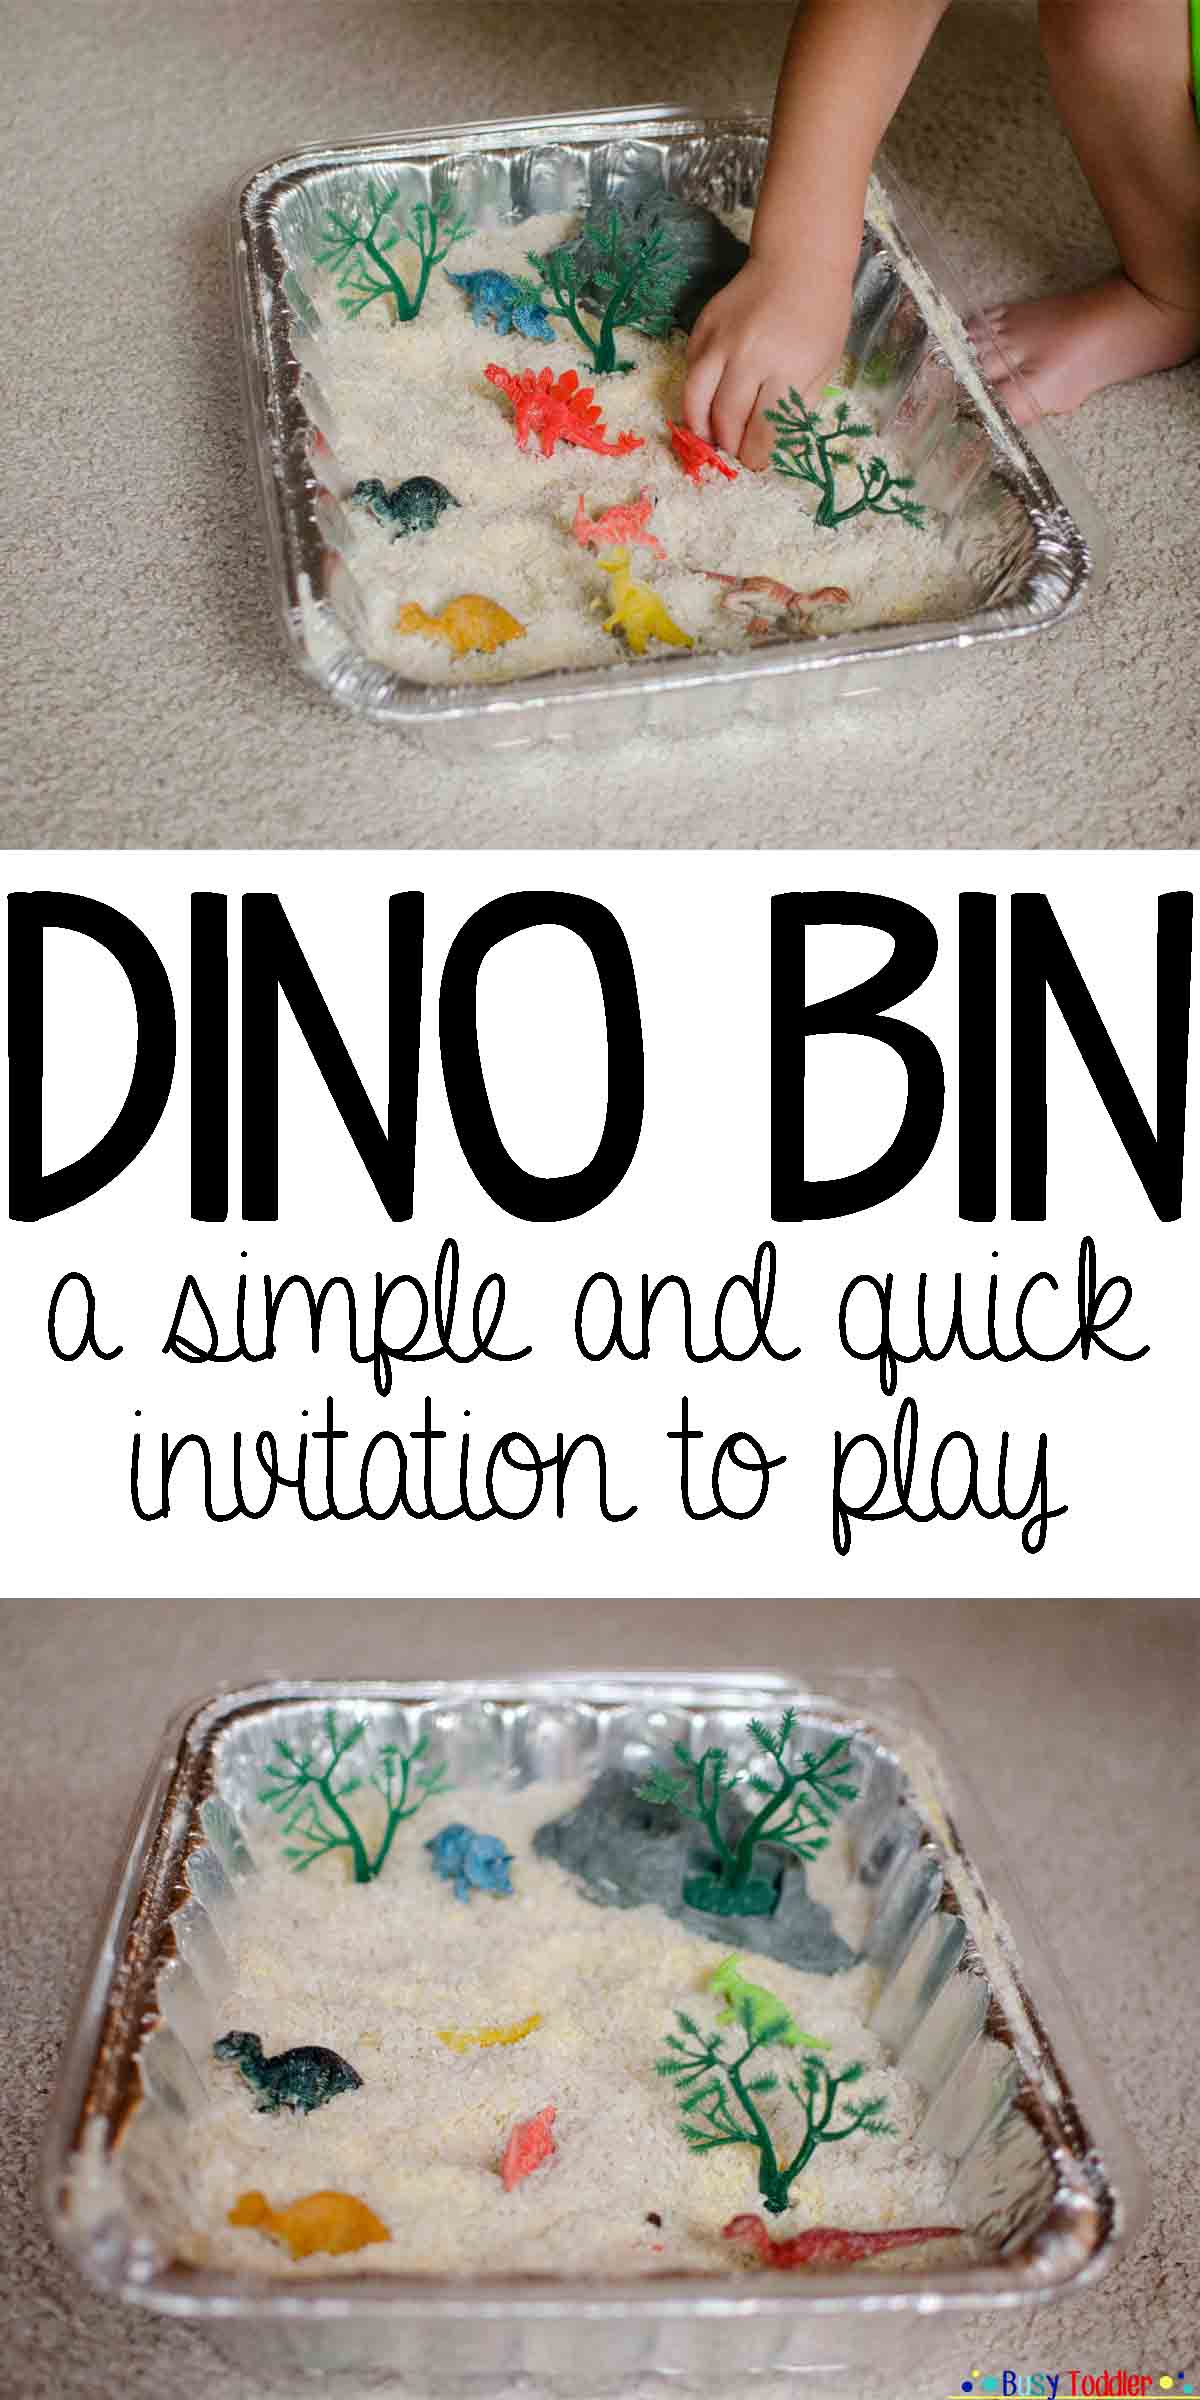 DINO BIN: an simple invitation to play